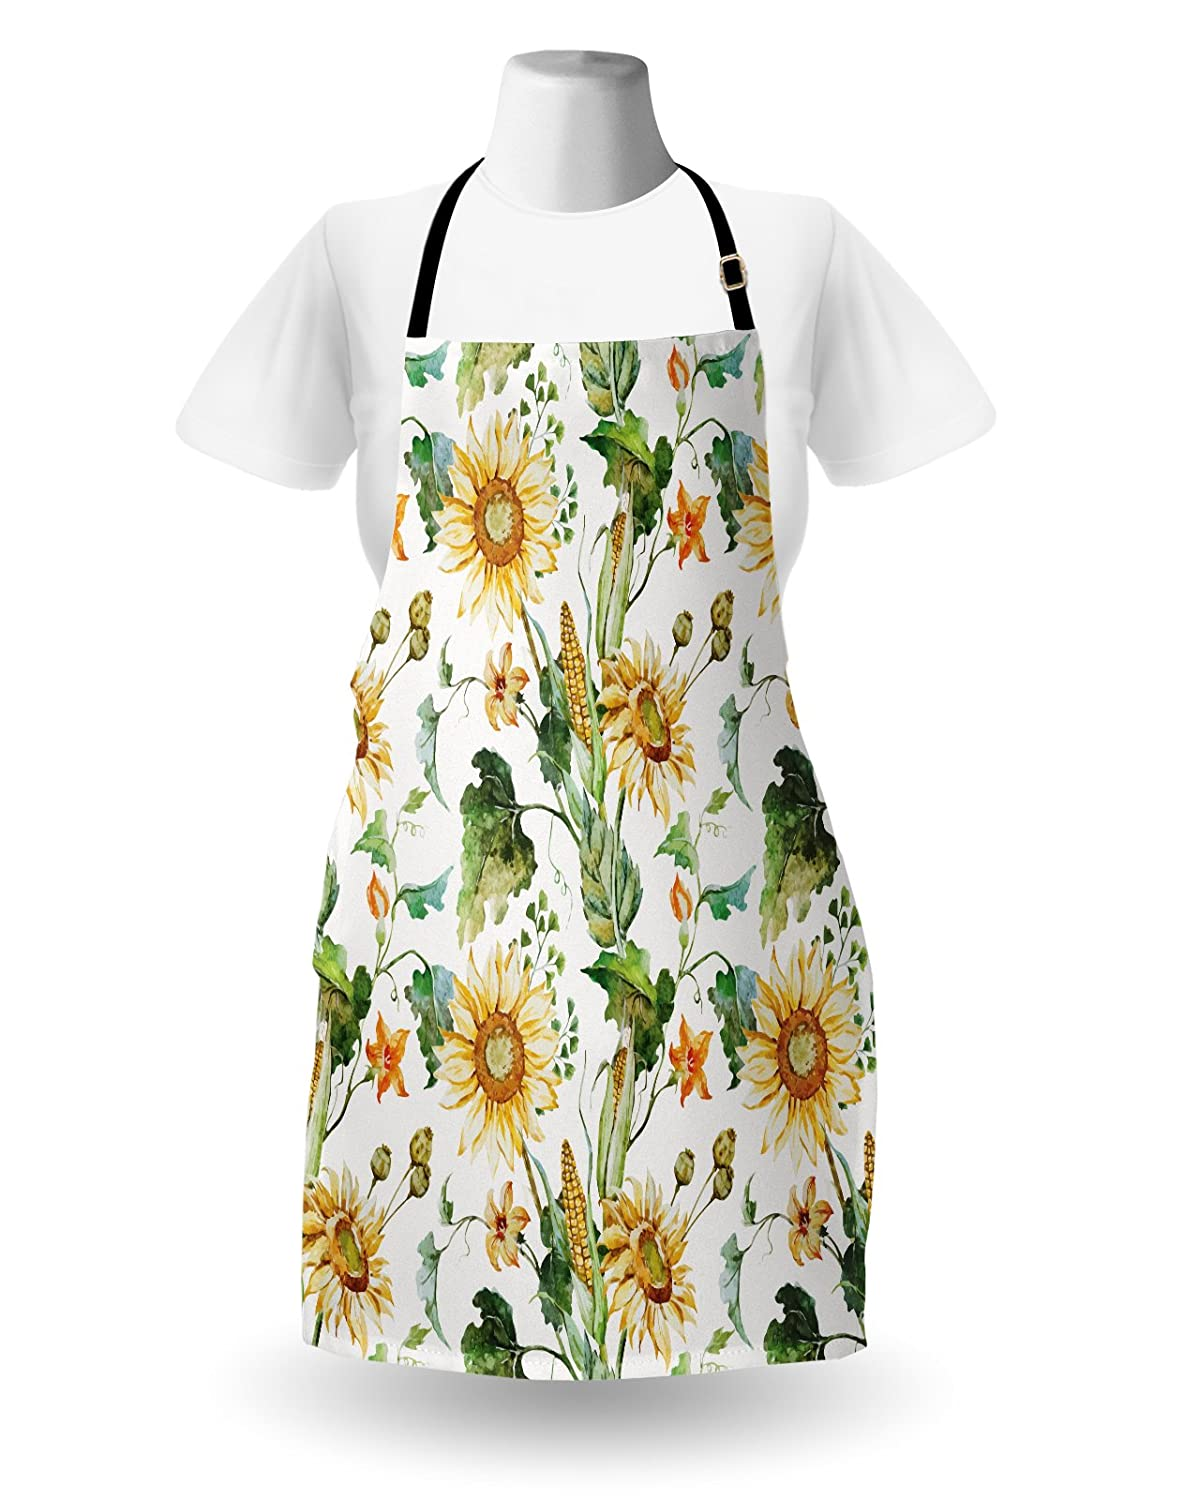 Multicolor Sunflower and Corn Pattern Agriculture Rural Plants Nature Closeup Classic Design Lunarable Sunflower Apron Unisex Kitchen Bib Apron with Adjustable Neck for Cooking Baking Gardening